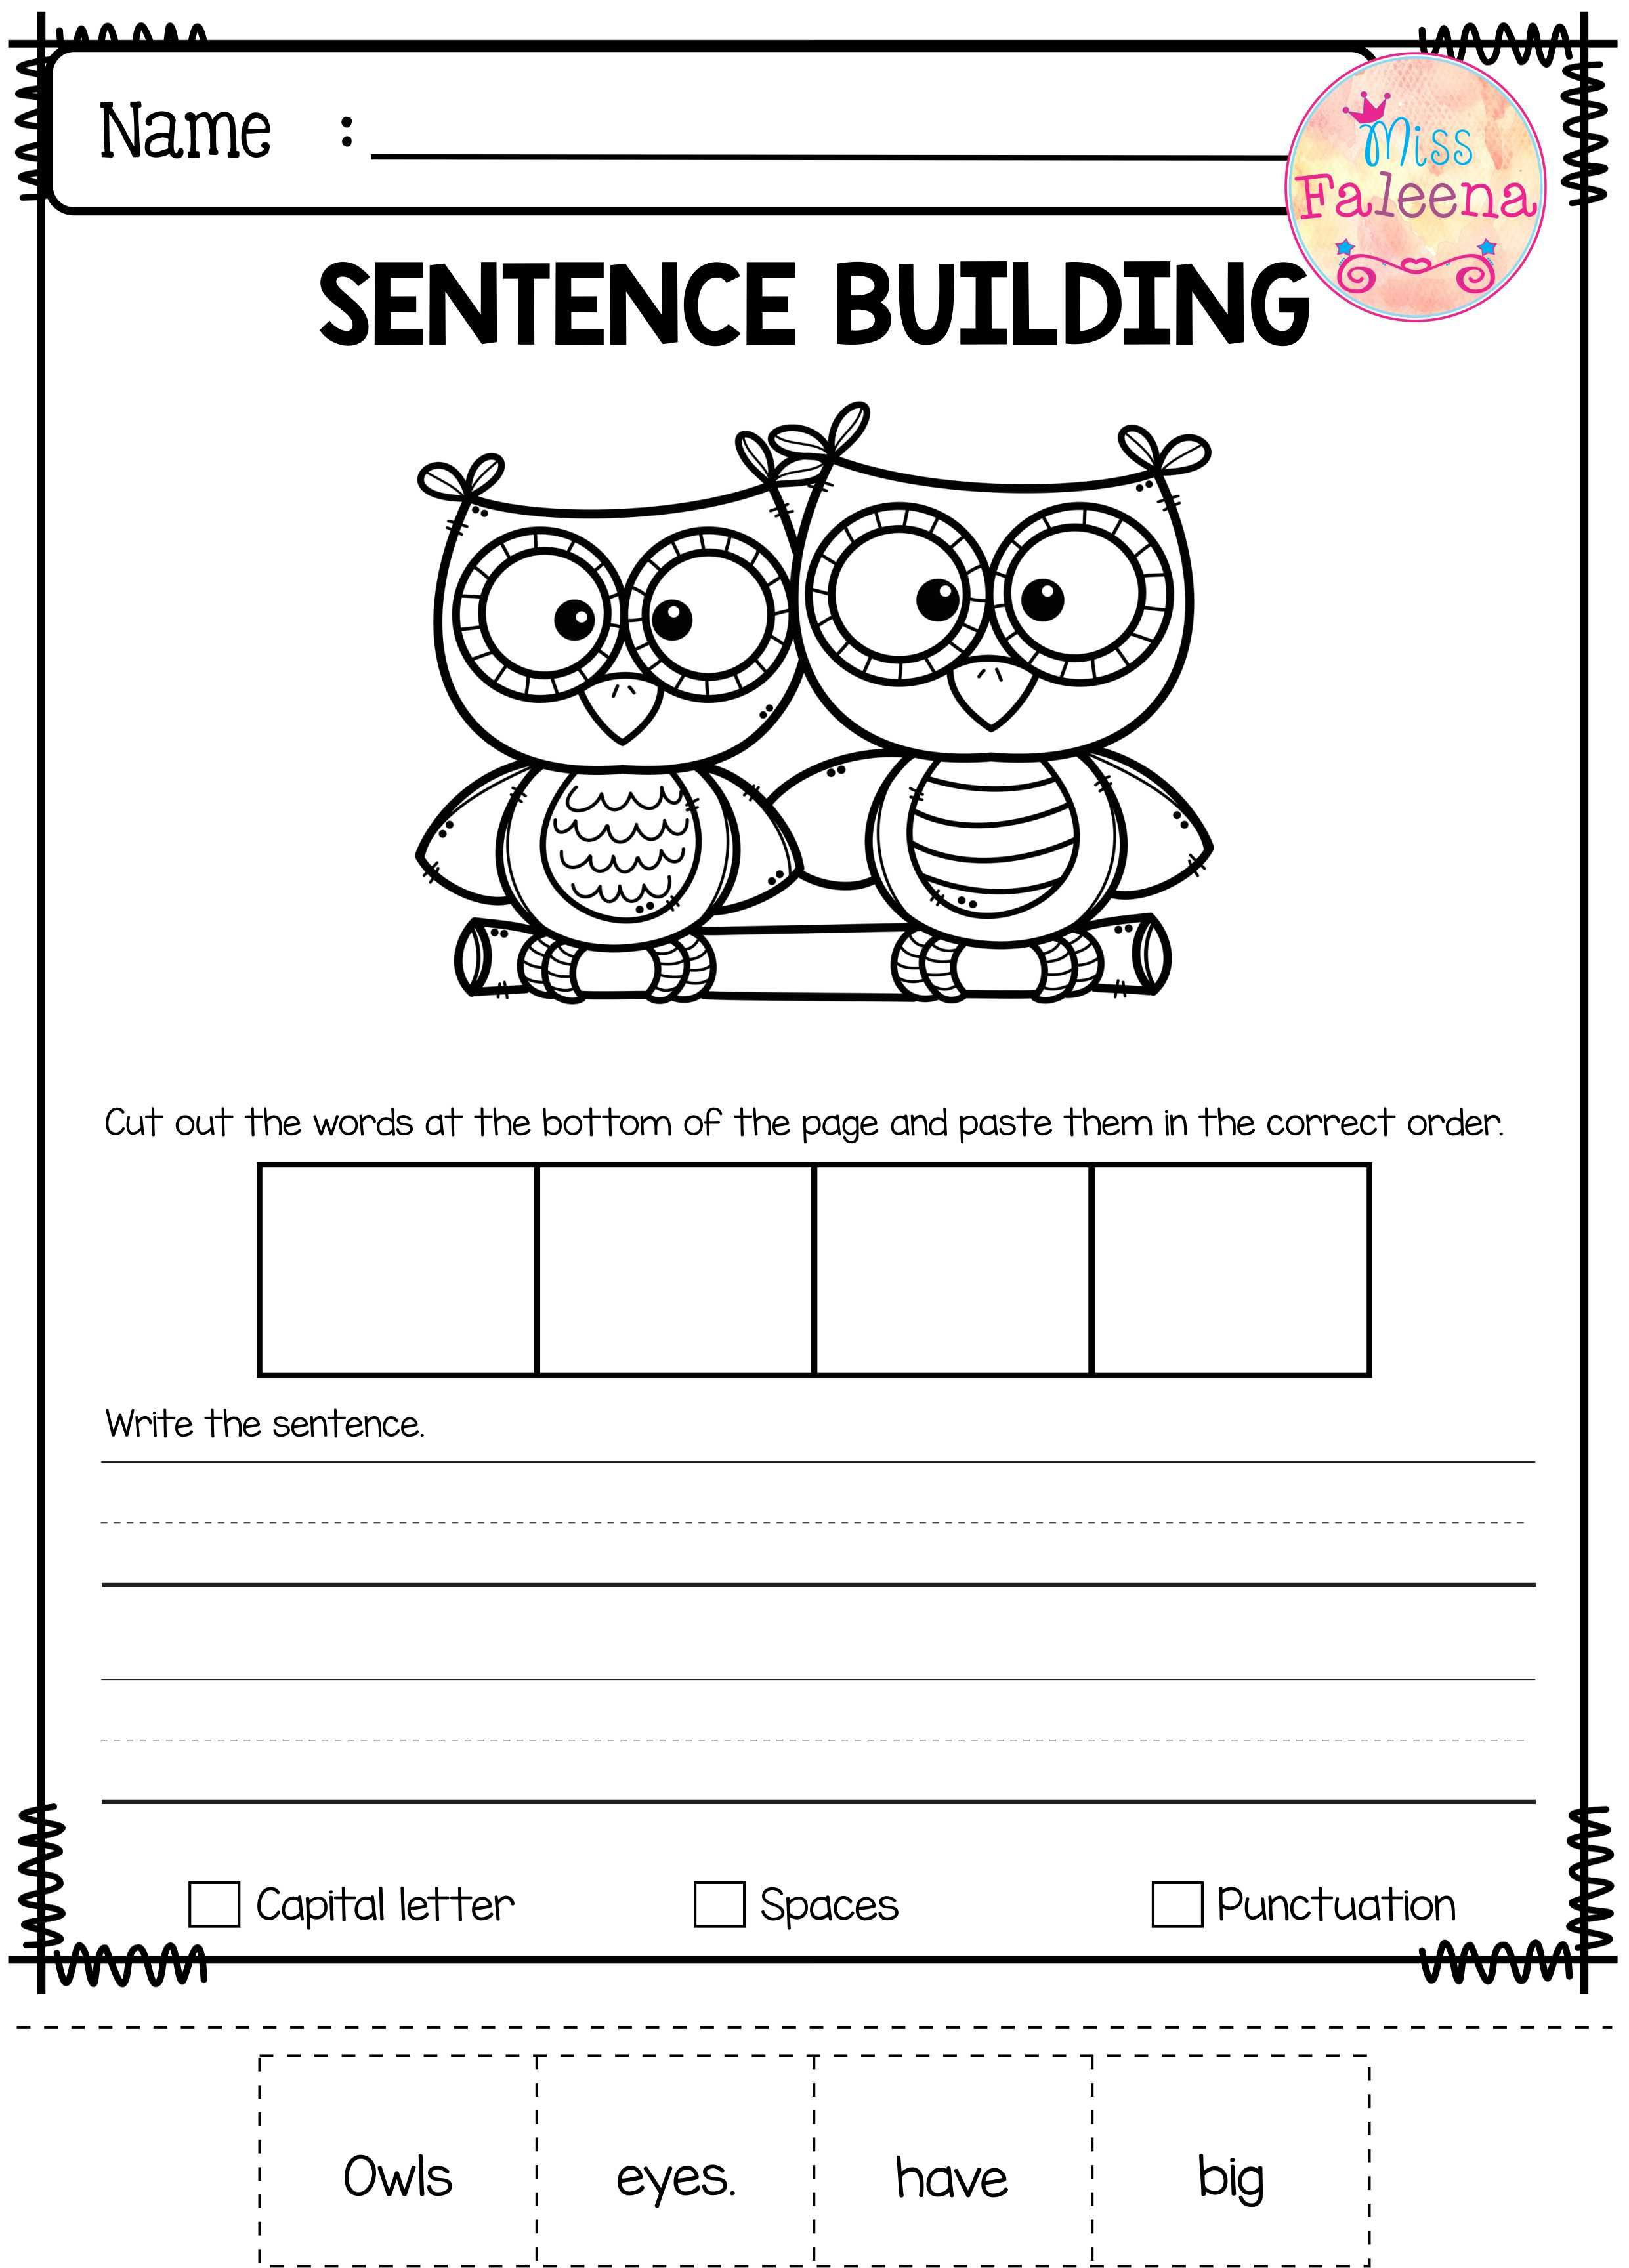 August Sentence Building Has 30 Pages Of Sentence Building Worksheets This Product Will Teach